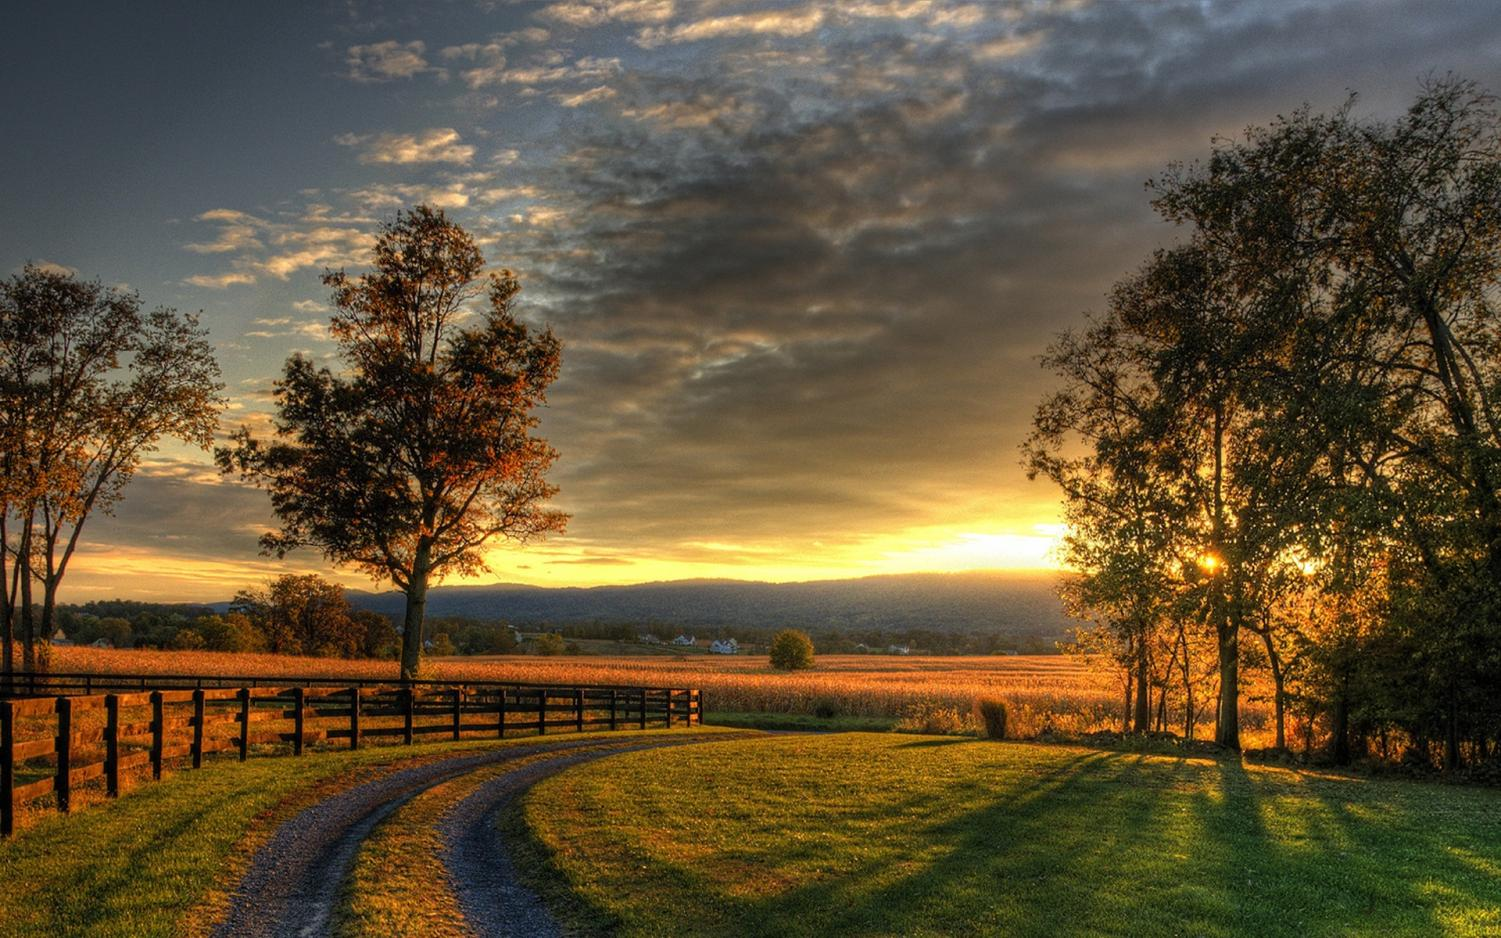 Photo of the countryside, courtesy of www.wallsdesk.com